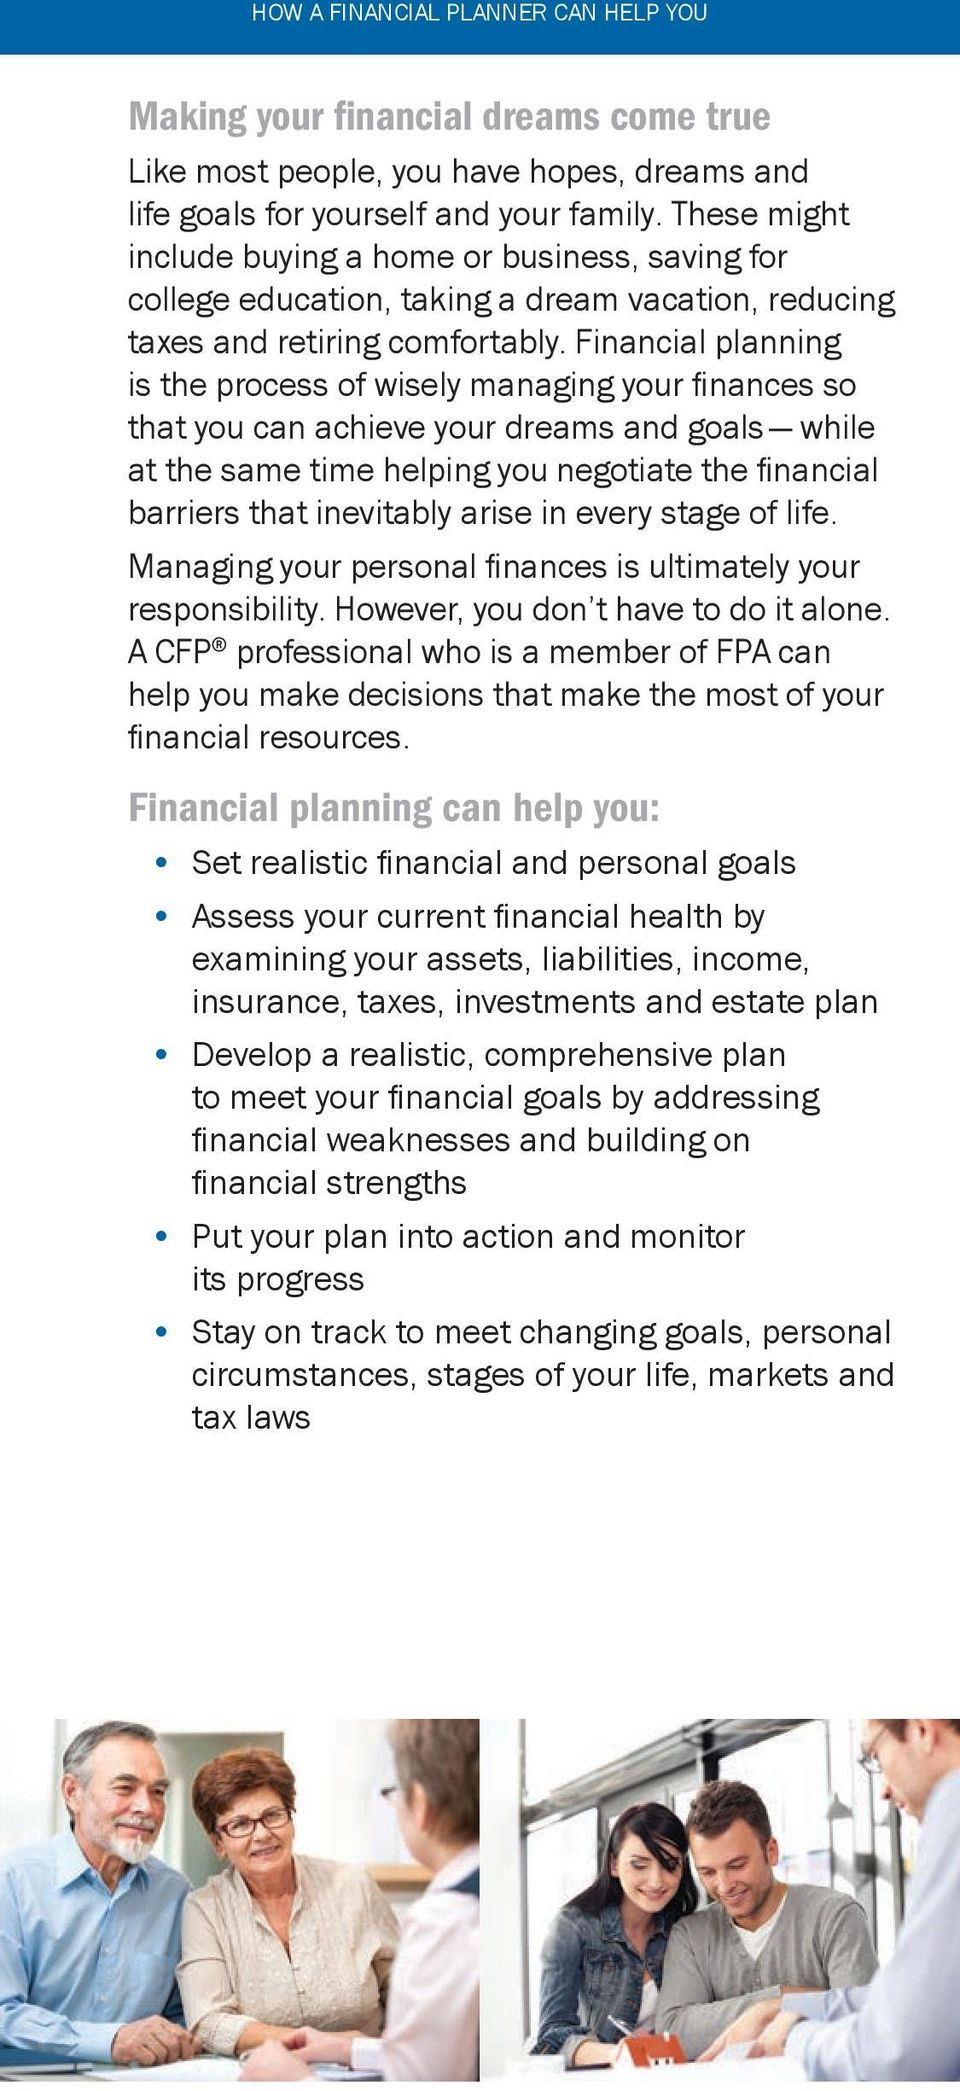 Financial planning is the process of wisely managing your finances so that you can achieve your dreams and goals while at the same time helping you negotiate the financial barriers that inevitably